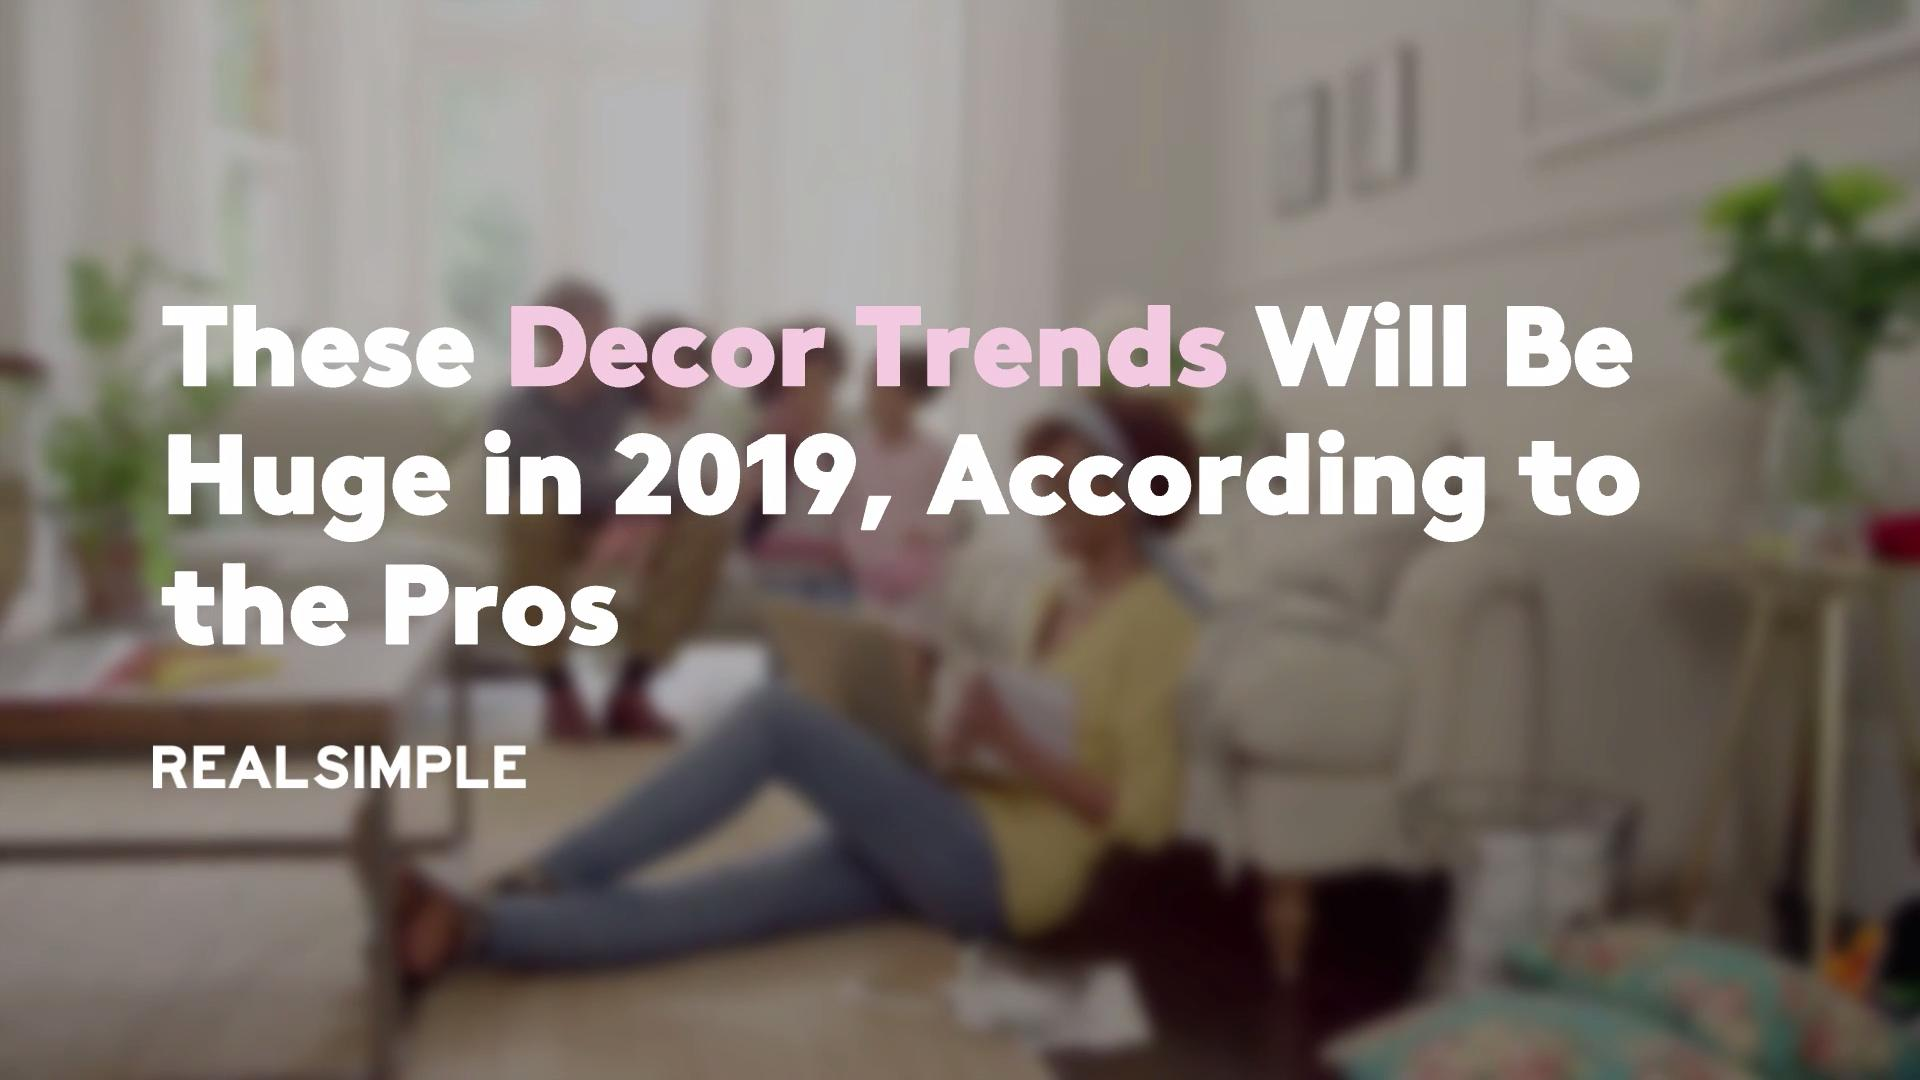 These Decor Trends Will Be Huge in 2019, According to the